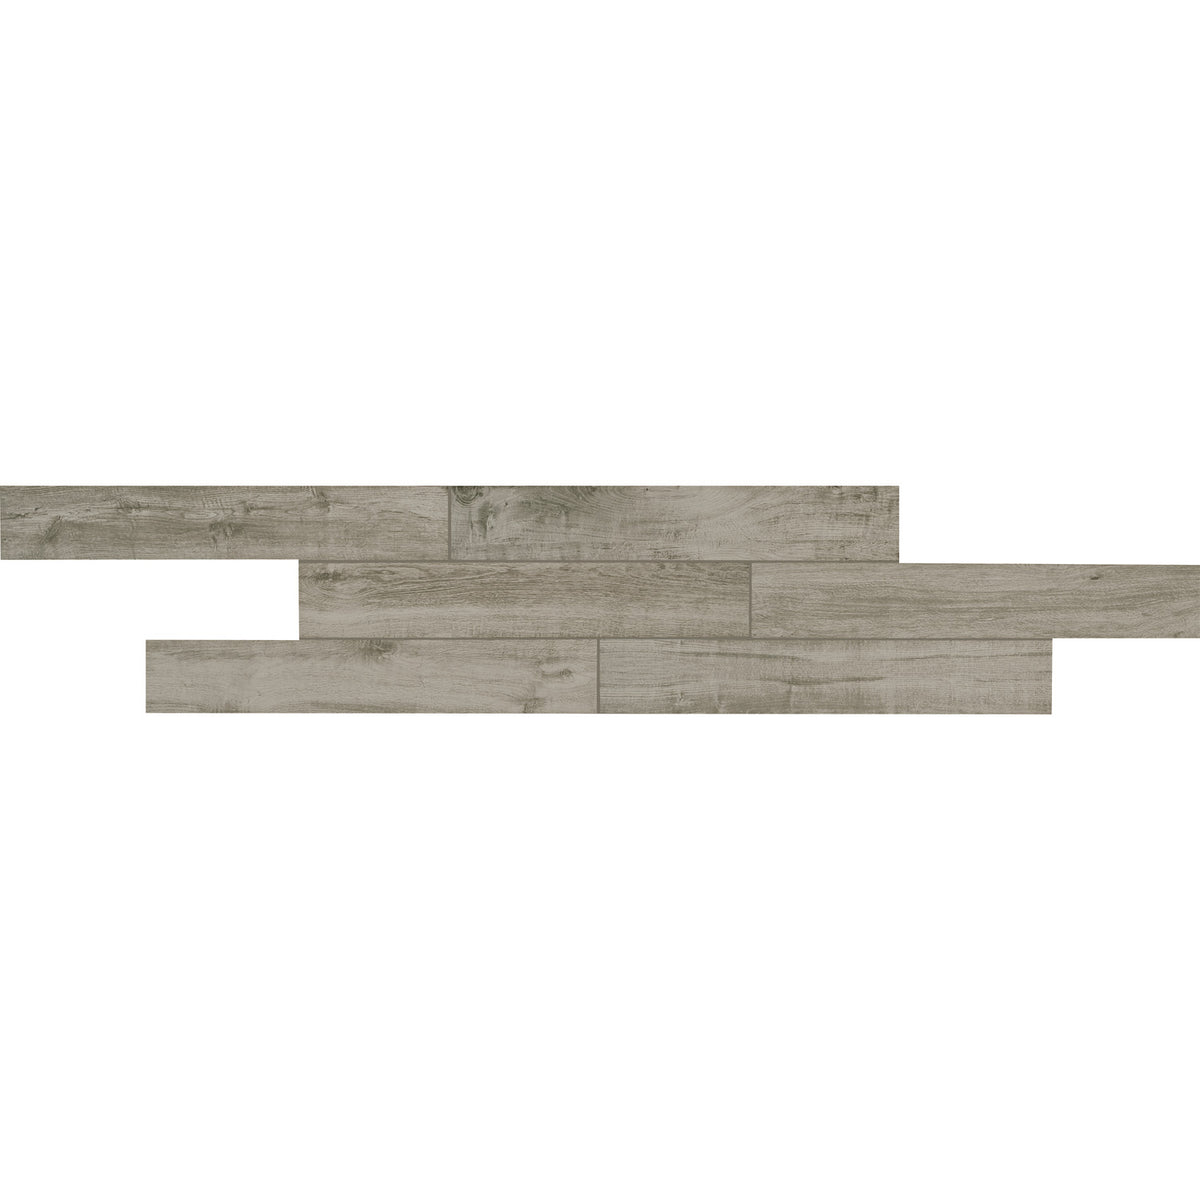 American Olean Creekwood 6 in. x 36 in. Porcelain Floor Tile - Ash River